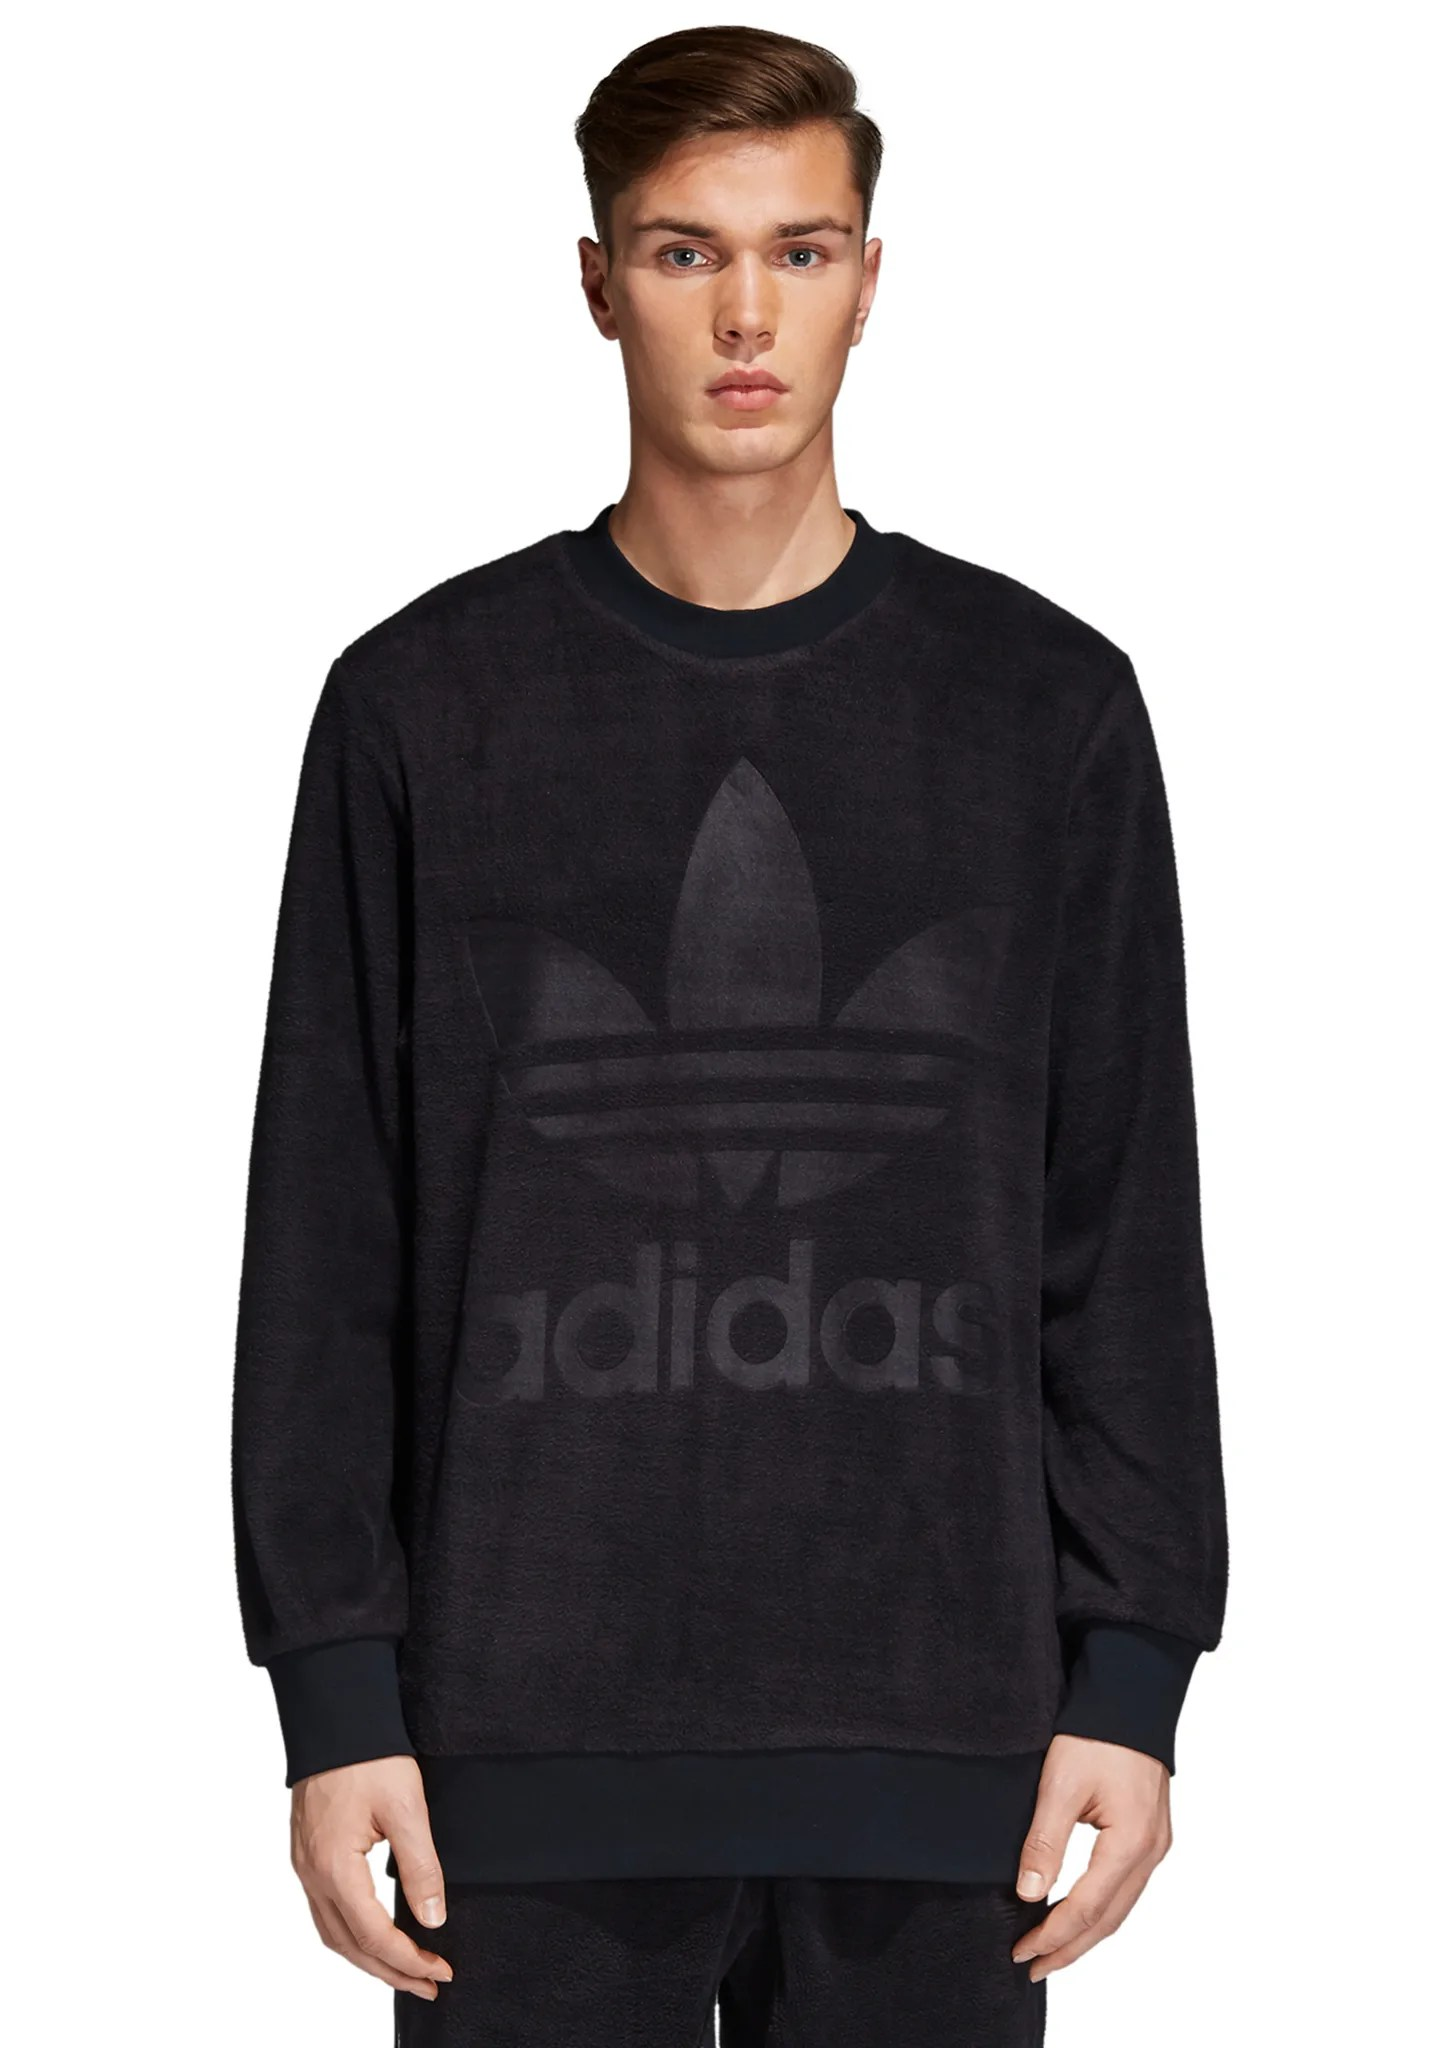 Adidas Sweatshirt Schwarz Herren Adidas Originals Velour Crew Sweatshirt For Men Black